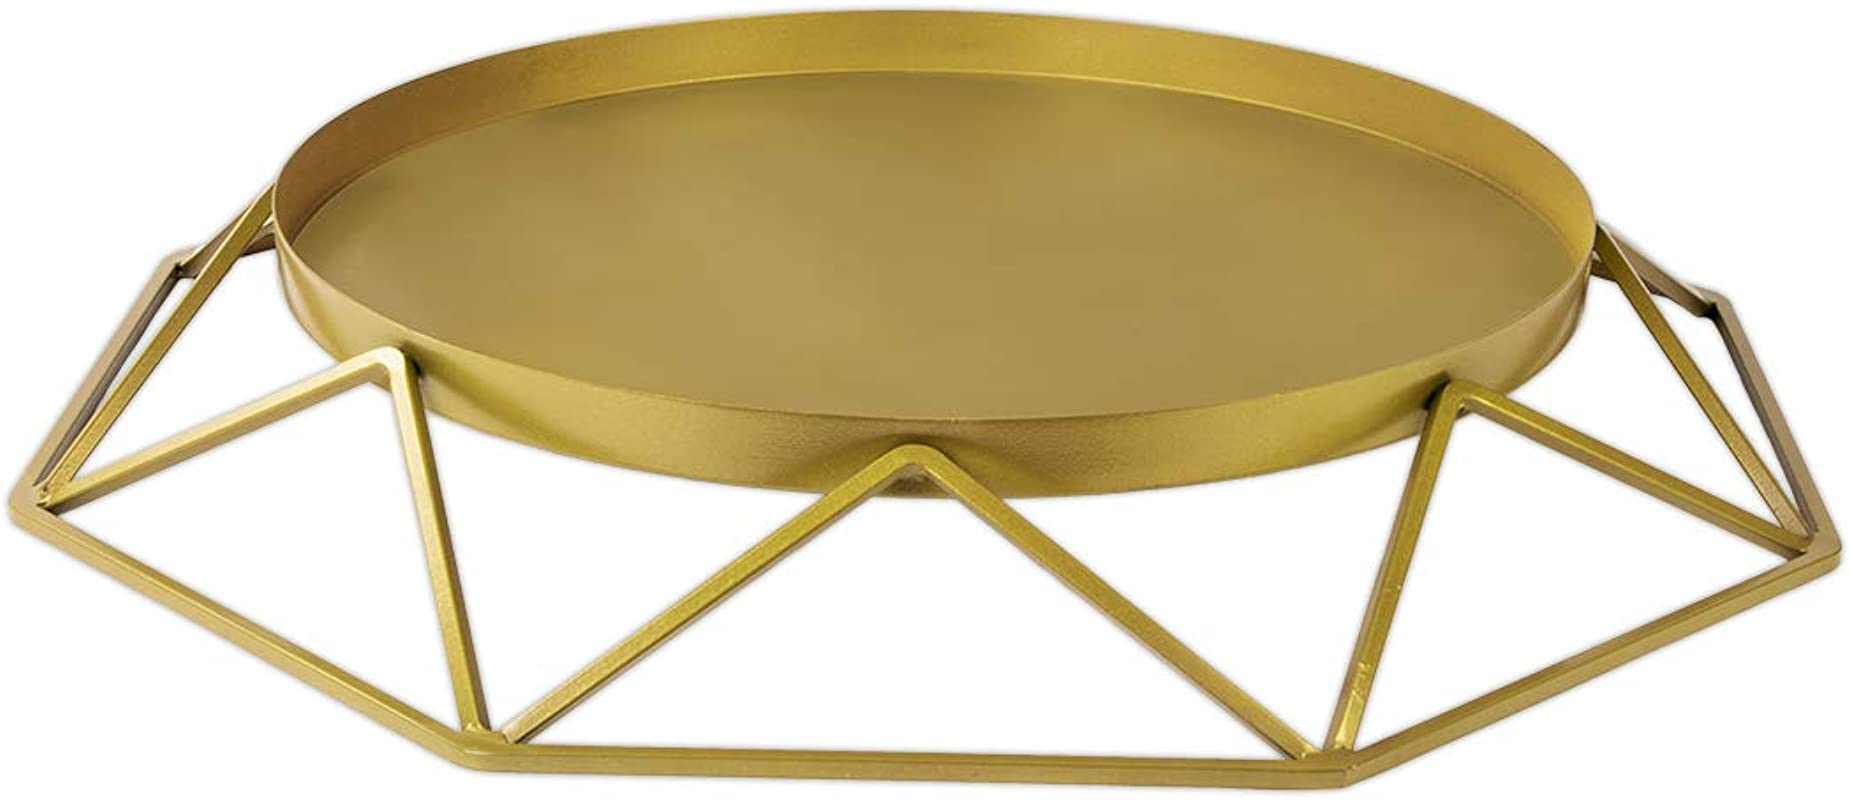 Koyal Wholesale Gold Geometric Metal Round Cake Stand 15 75 Inch Round Modern Geo Large Tier Cake Stand